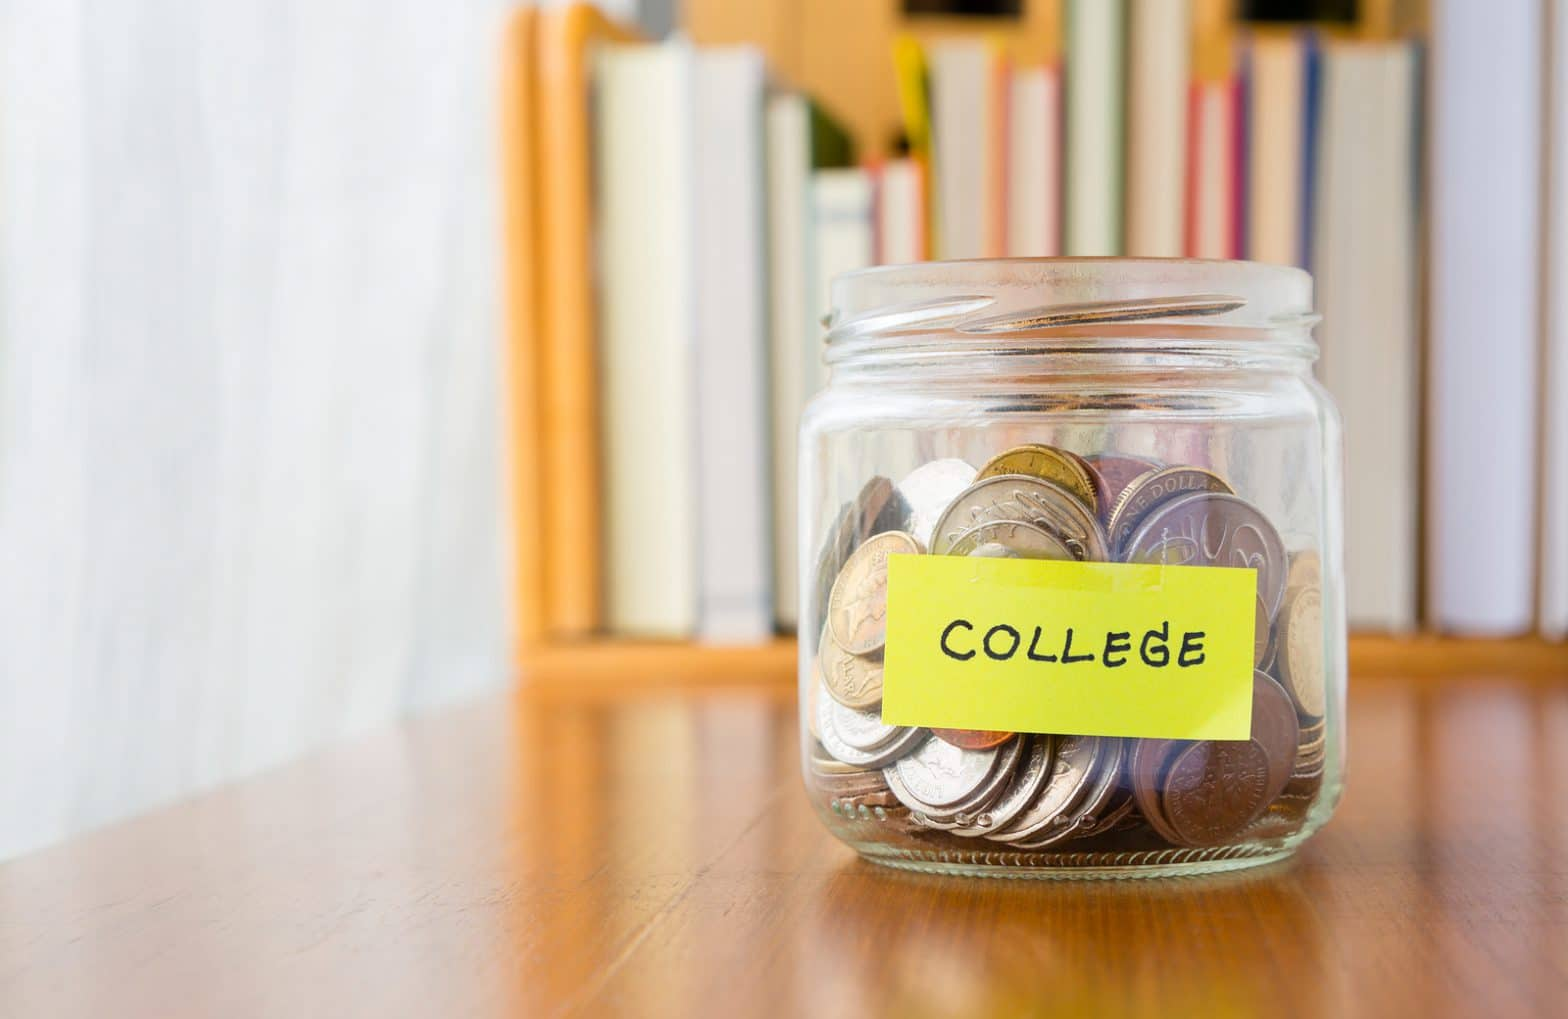 Tough economic times prompt new questions for college visits